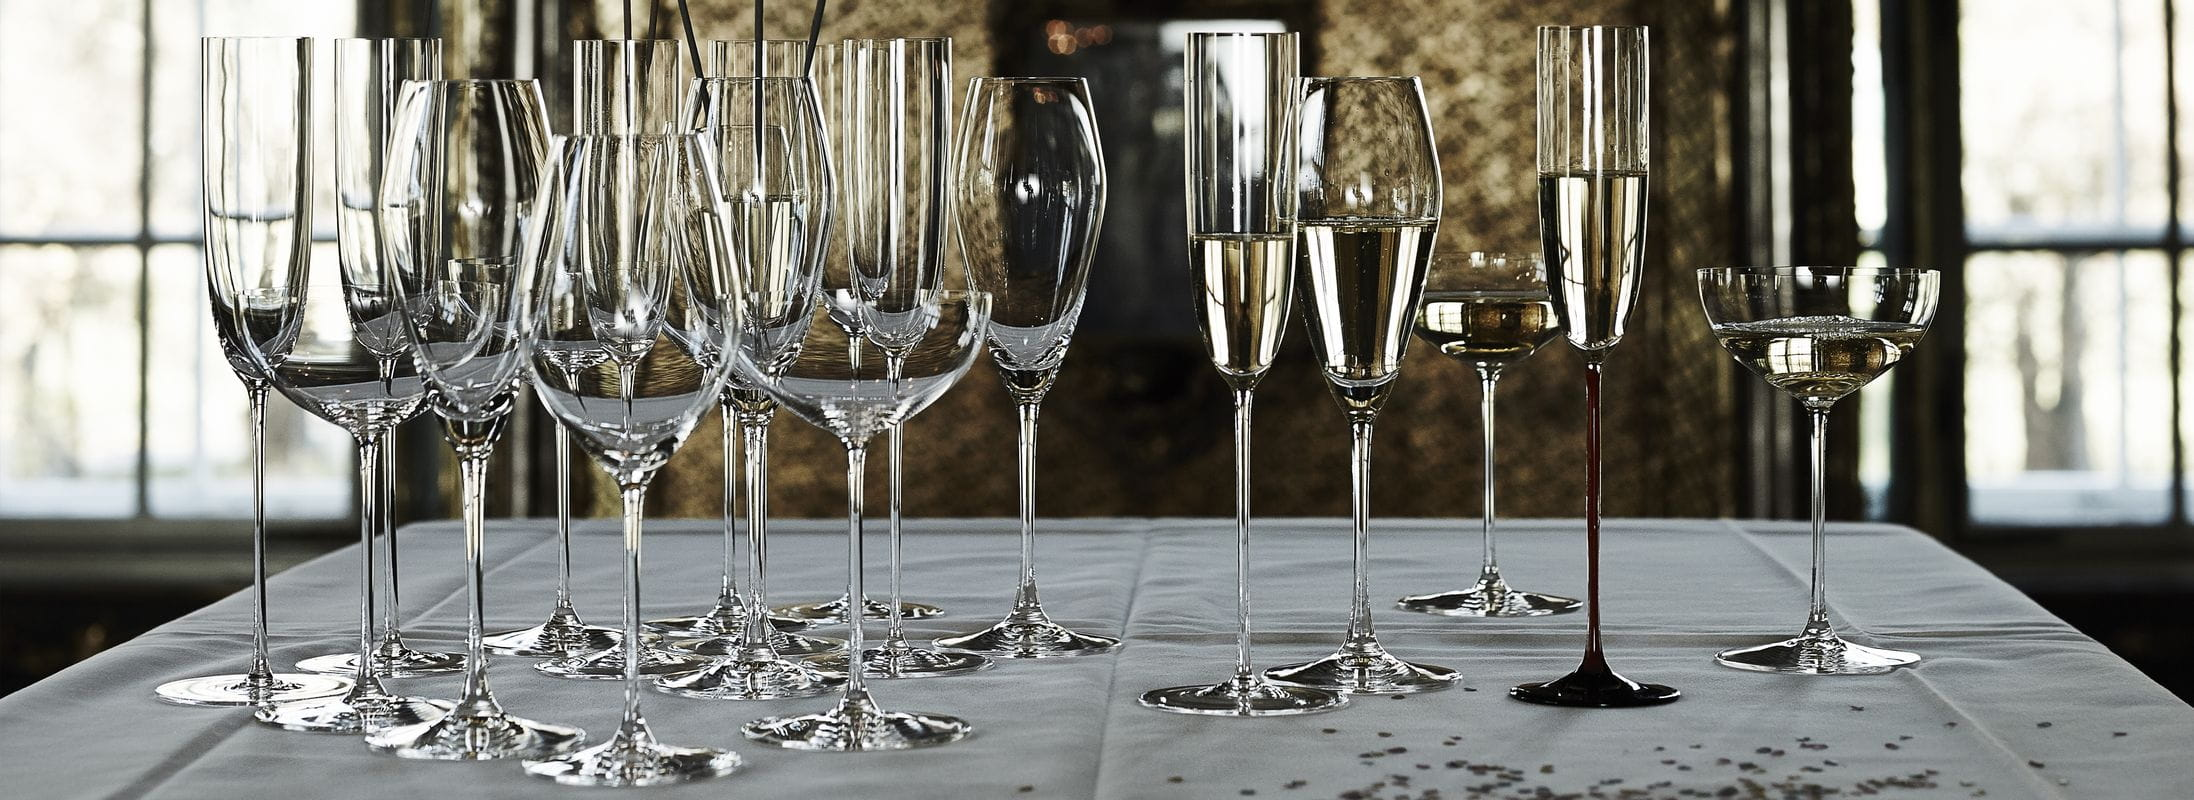 Several Champagne and sparkling wine glasses at a glance